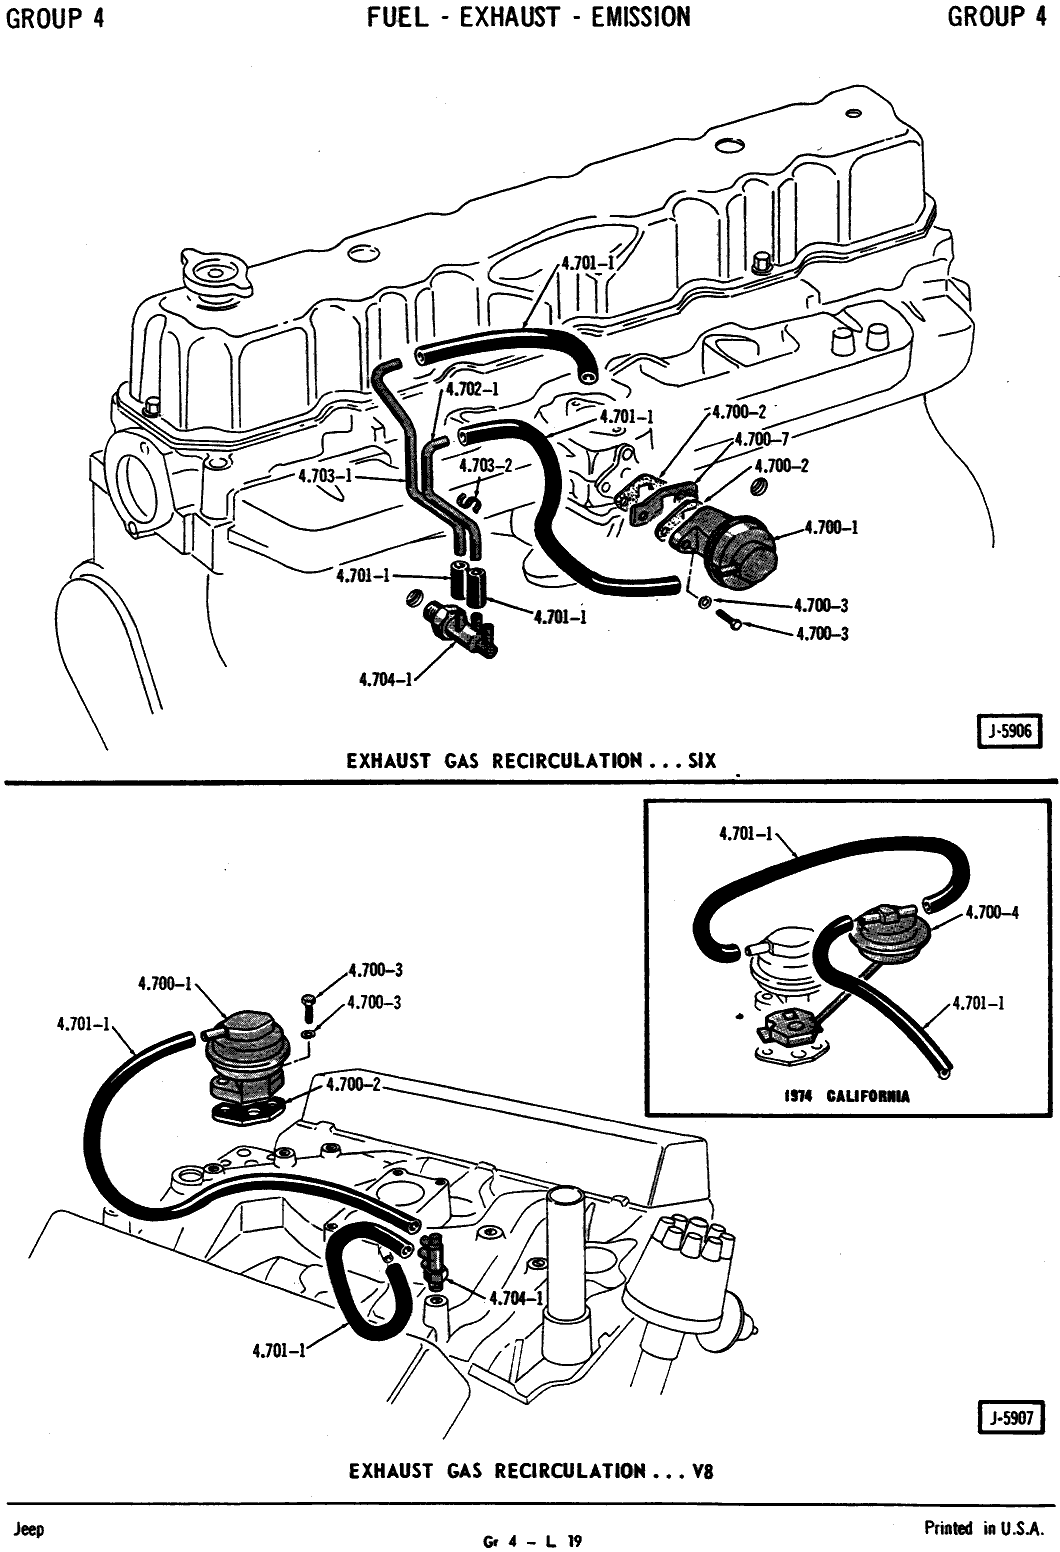 Vacuum Line Routing on jeep cherokee parts diagram, 96 jeep cherokee wiring diagram, jeep cherokee 4 inch lift, jeep cherokee body parts,